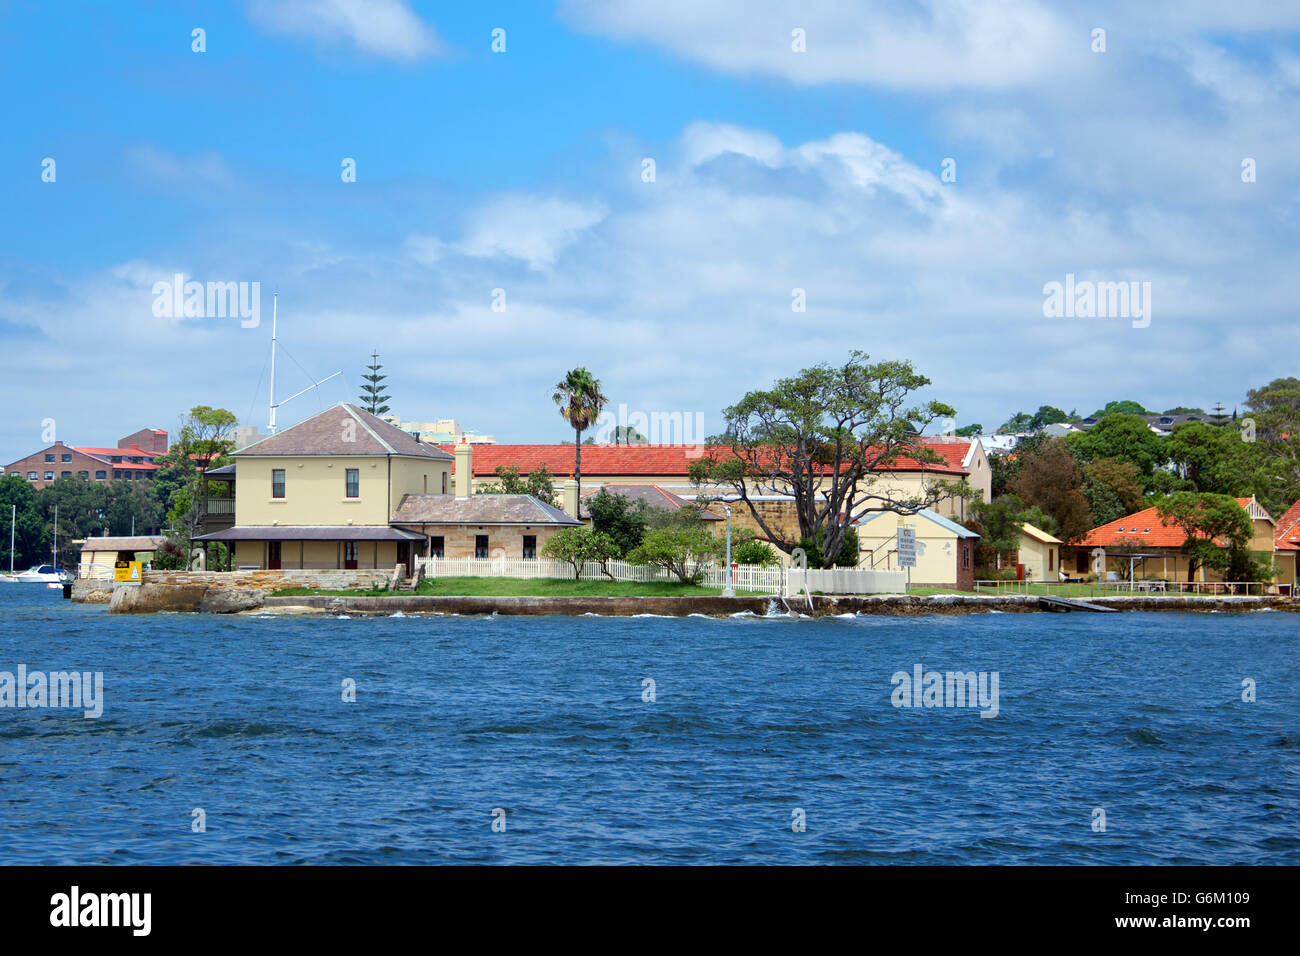 Old colonial buildings Spectacle Island Sydney Harbour NSW Australia - Stock Image